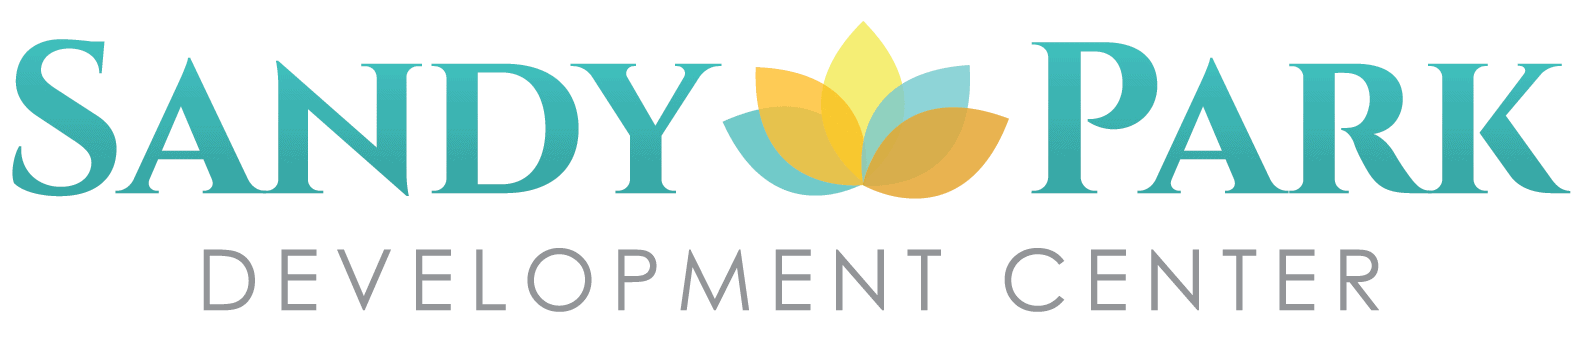 Sandy Park Development Center [logo]